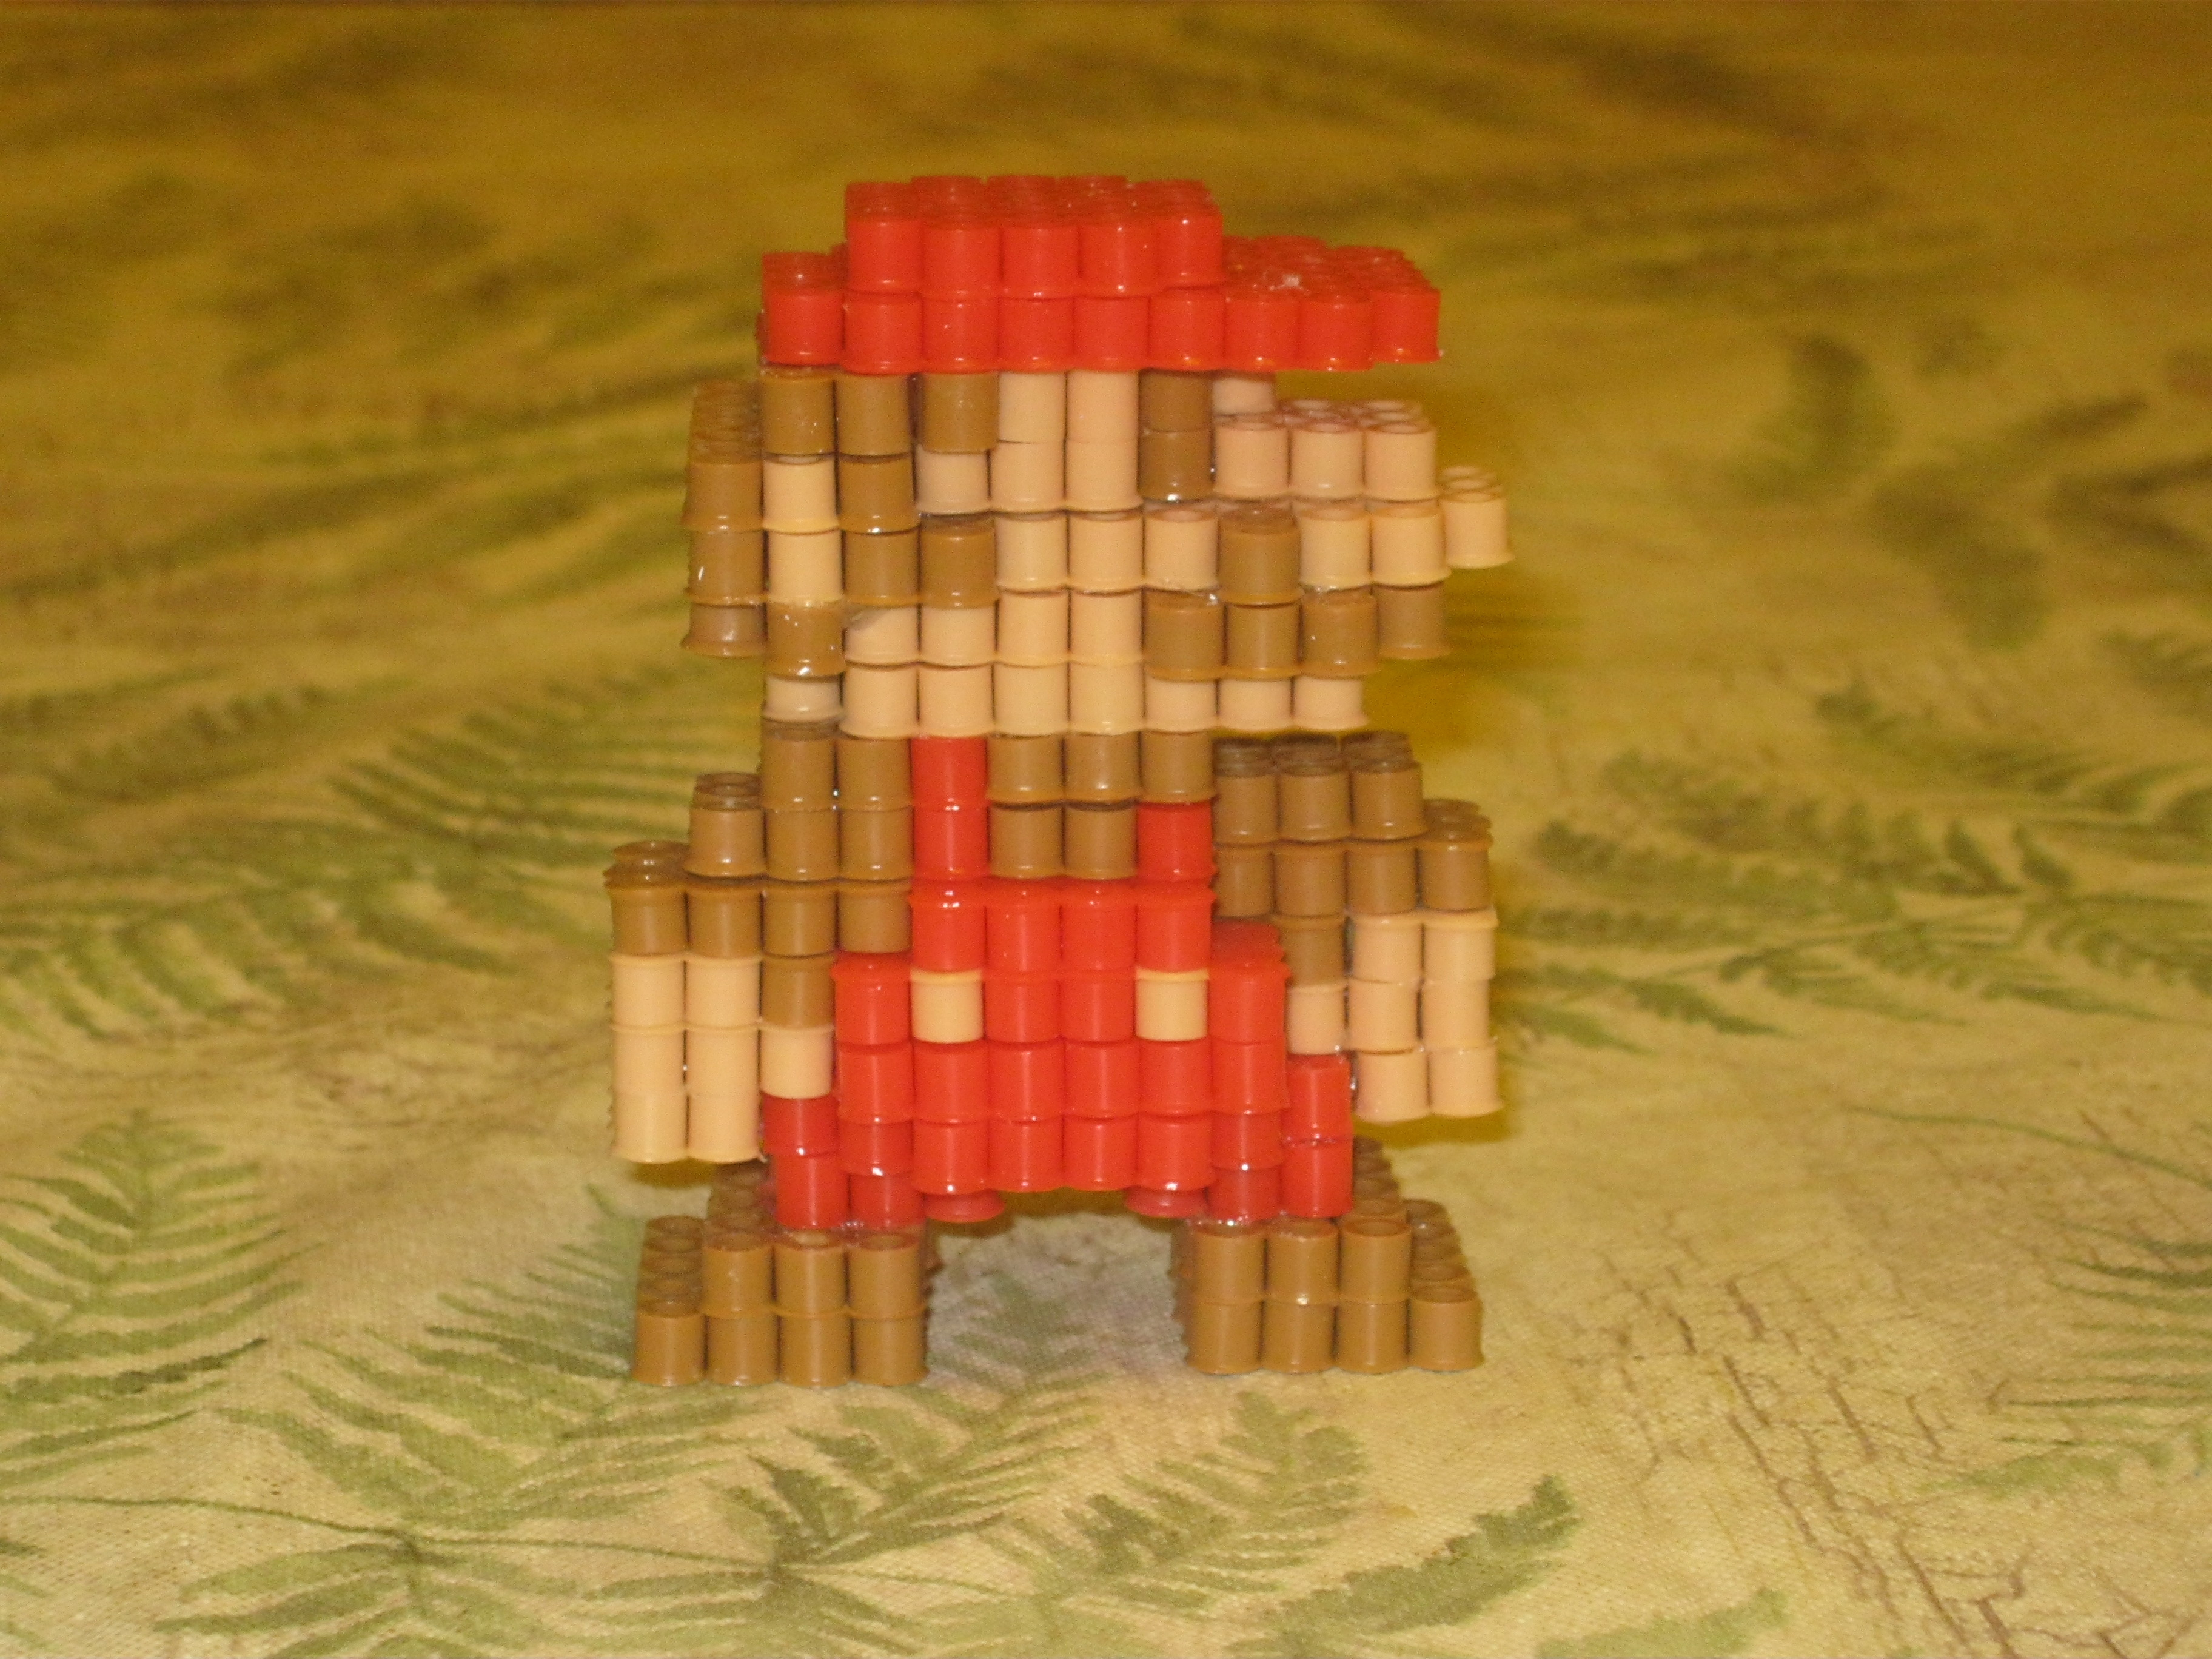 Super Mario Bros  Mario Sprite – In 3D! | Satoshi Matrix's Blog